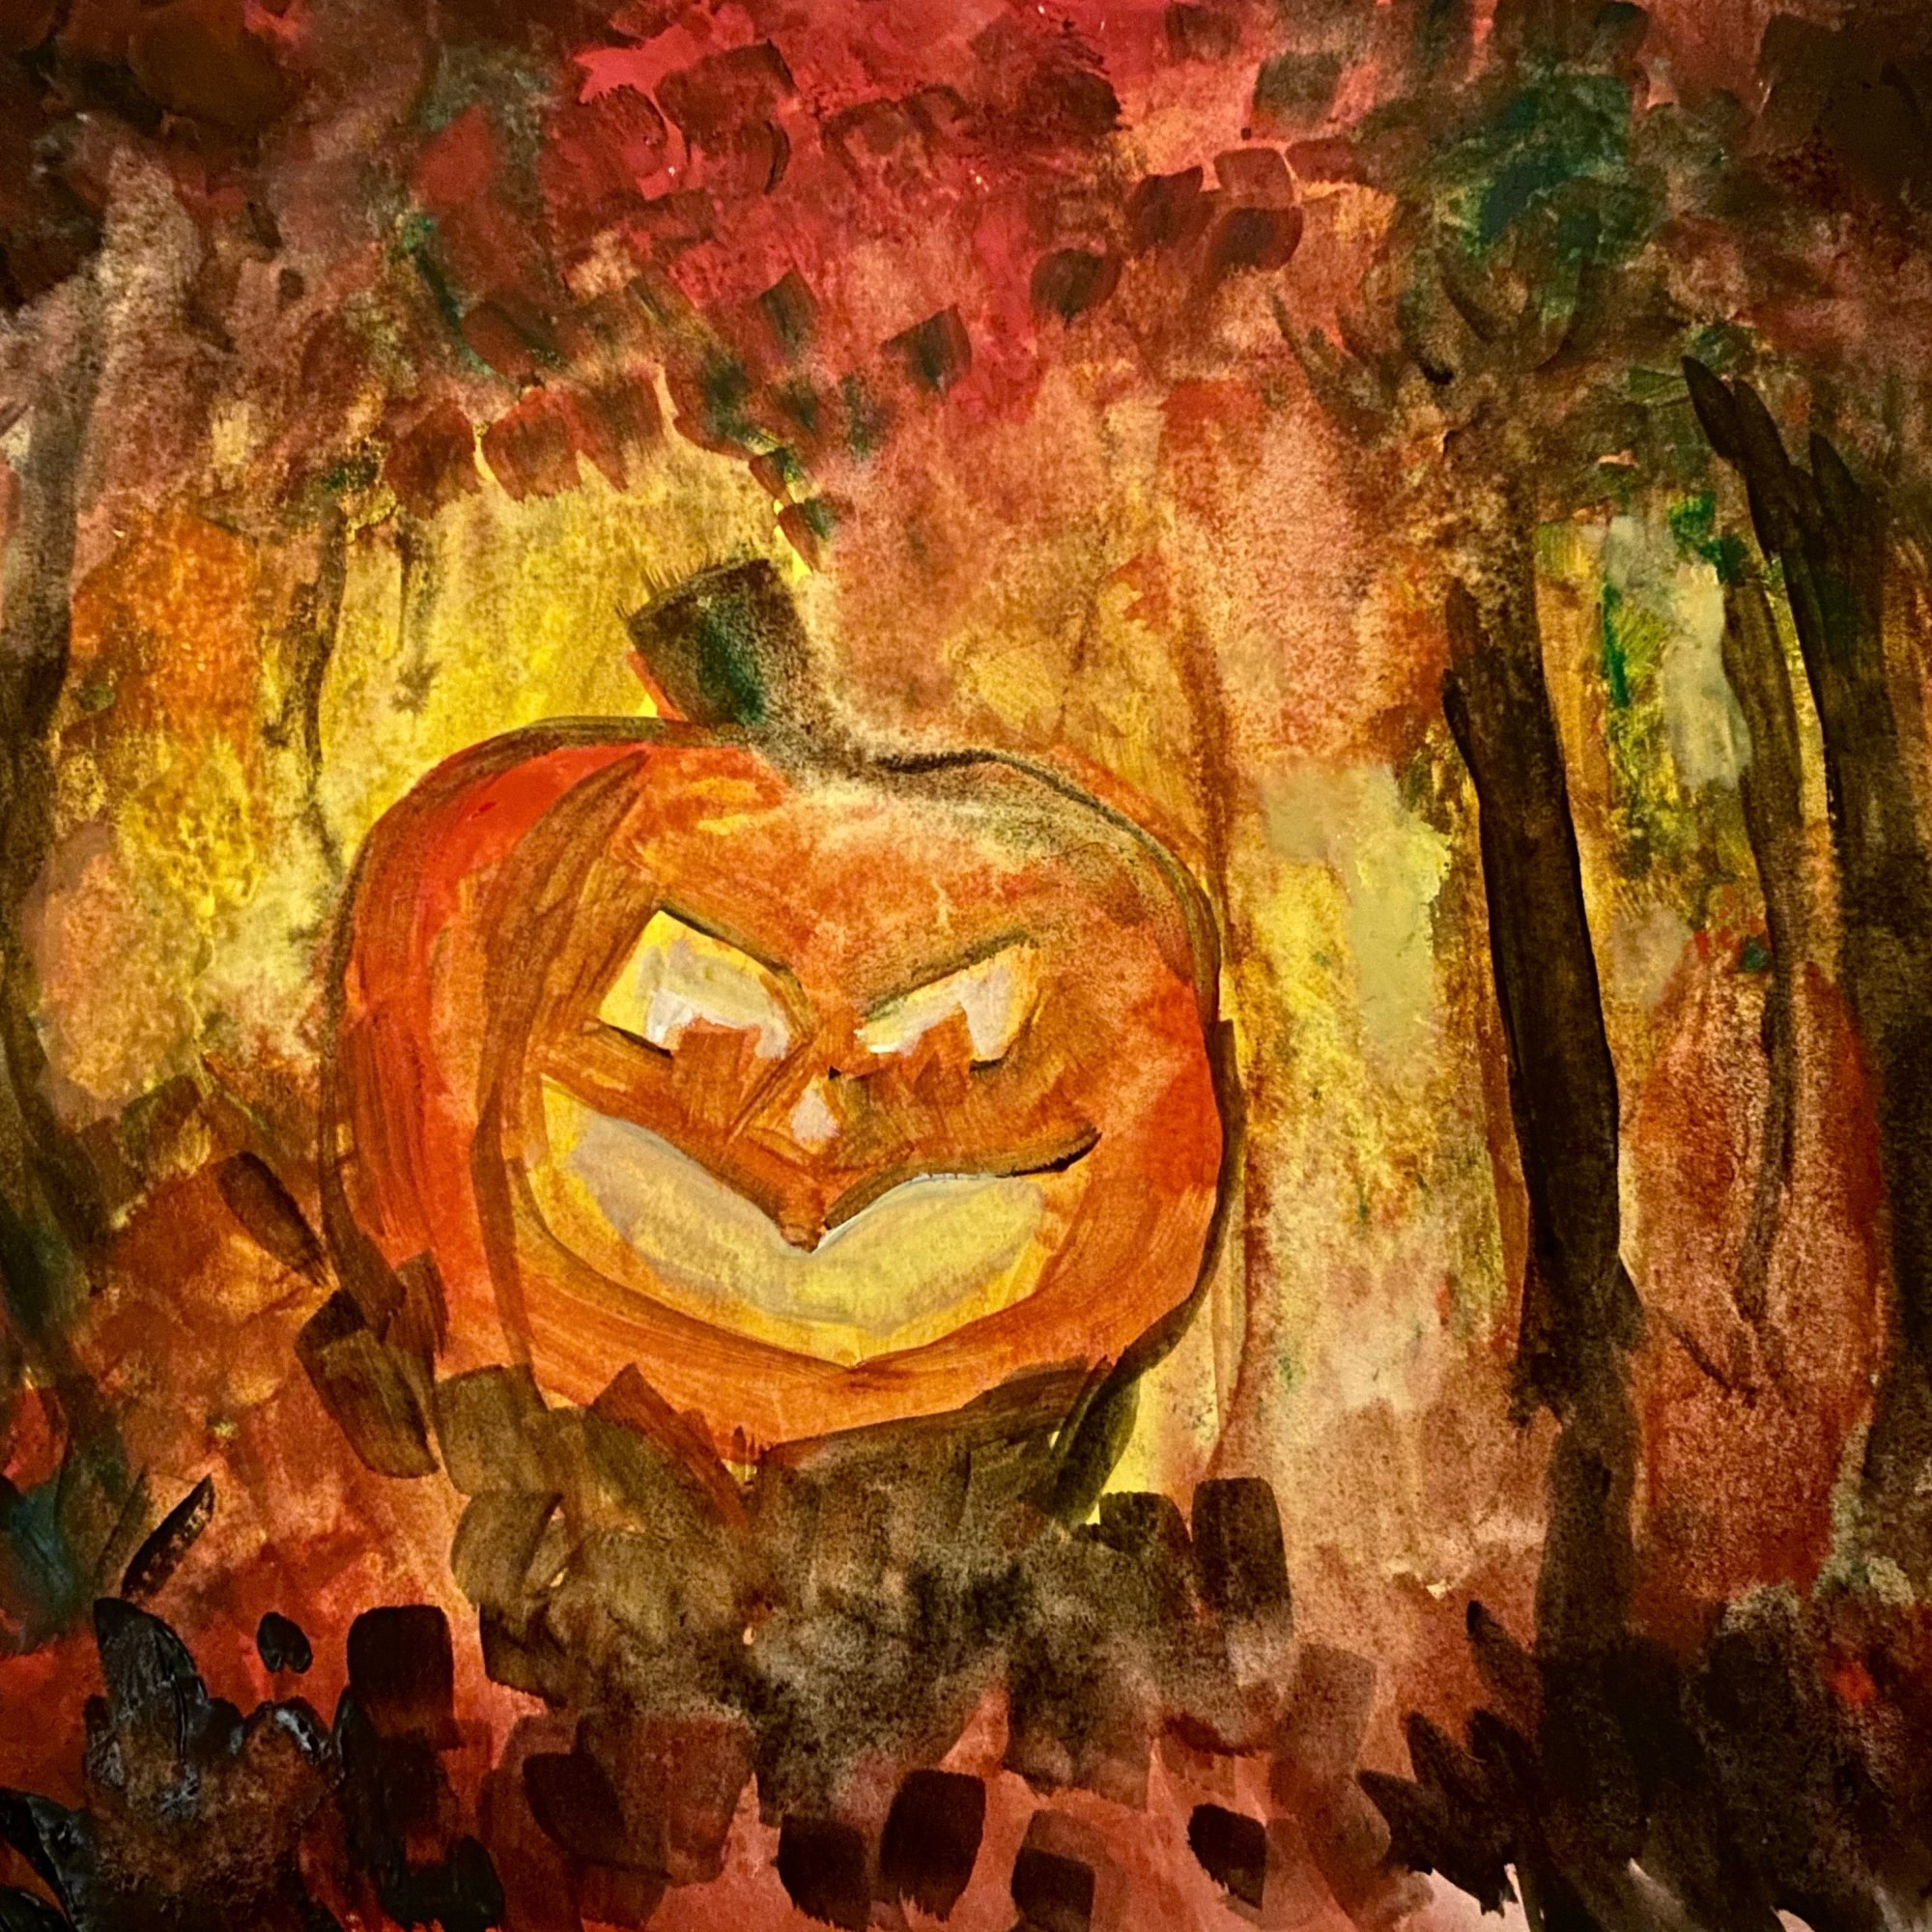 """The Jack O'Lantern - Original illustration (uncropped painting) featured on """"The Forest"""" (published on Spillwords Press)."""